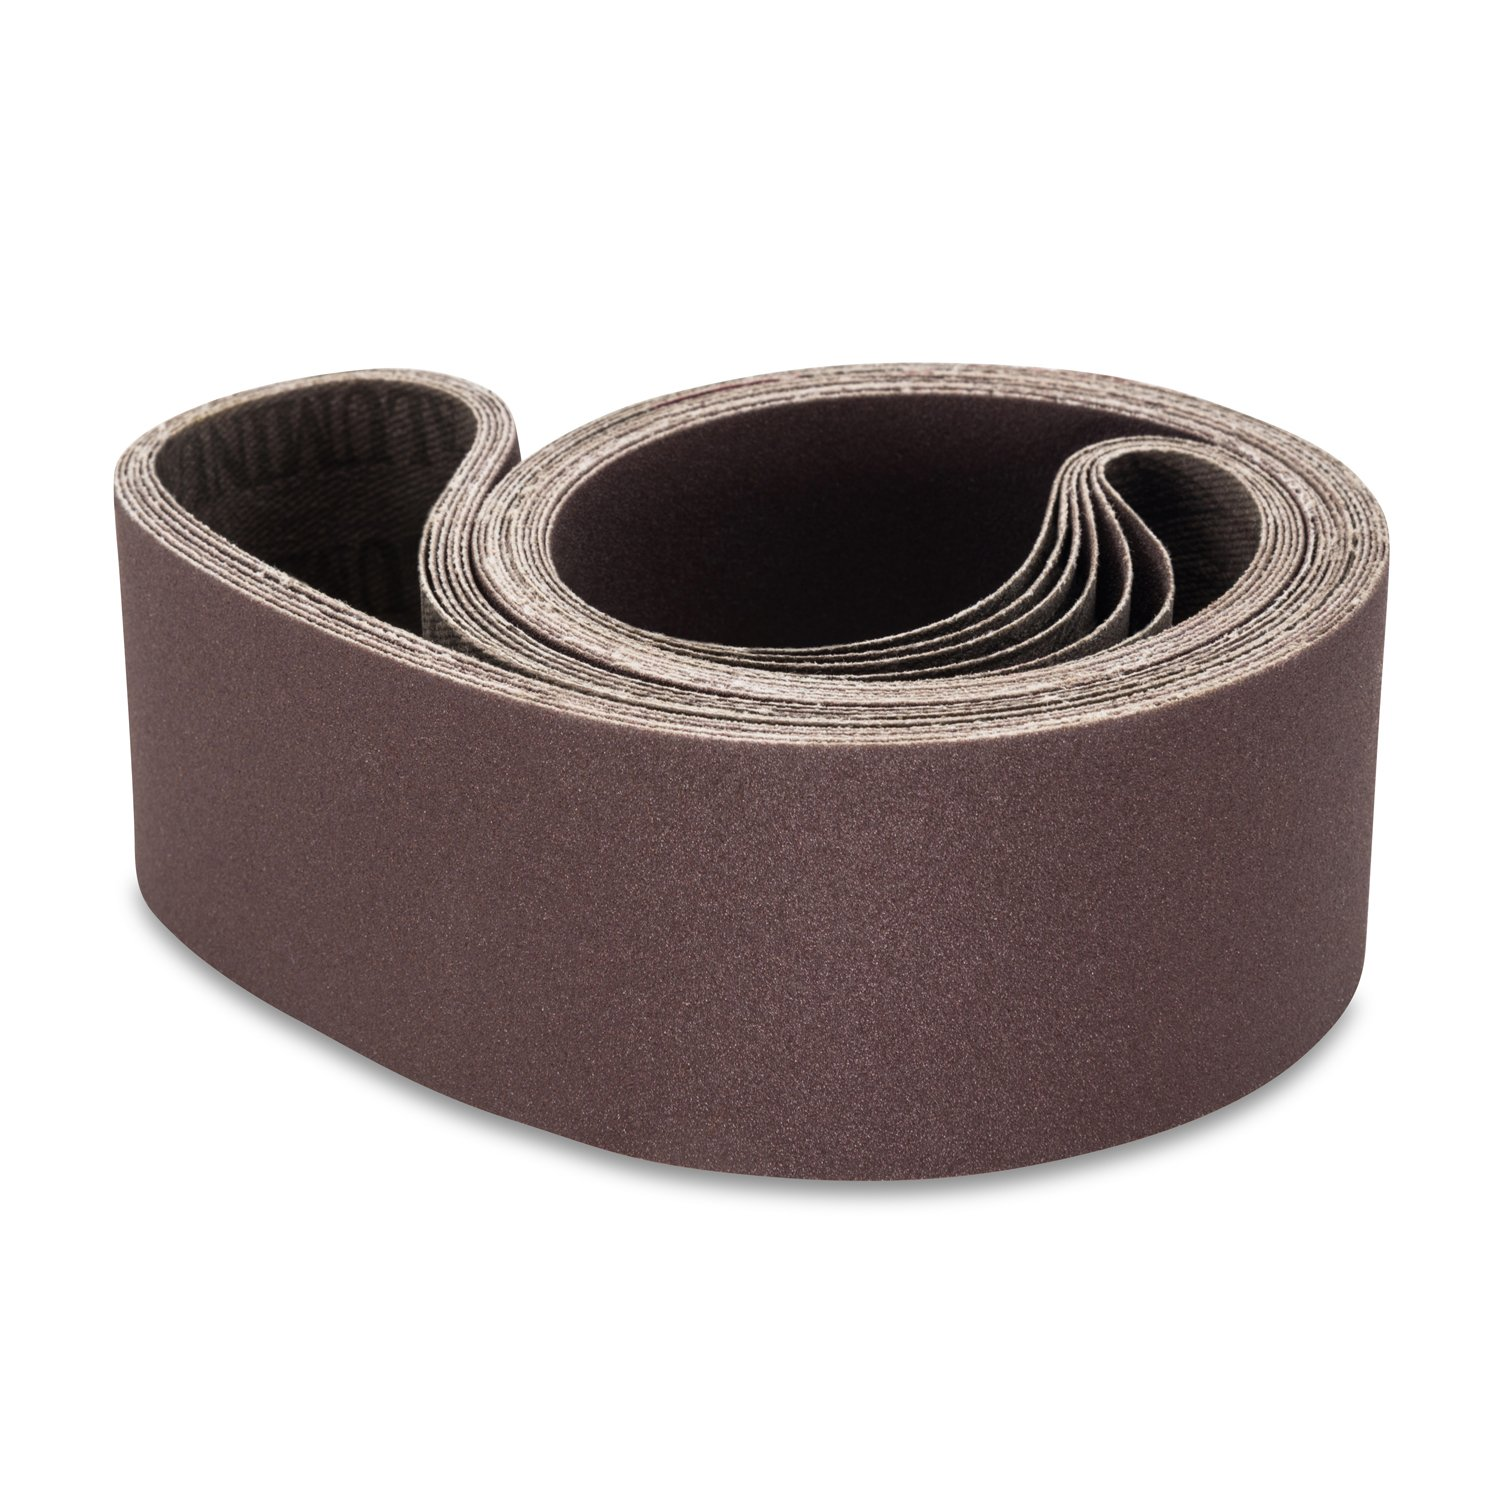 2 X 42 Inch 400 Grit Aluminum Oxide Premium Quality Metal Sanding Belts, 6 Pack by Red Label Abrasives